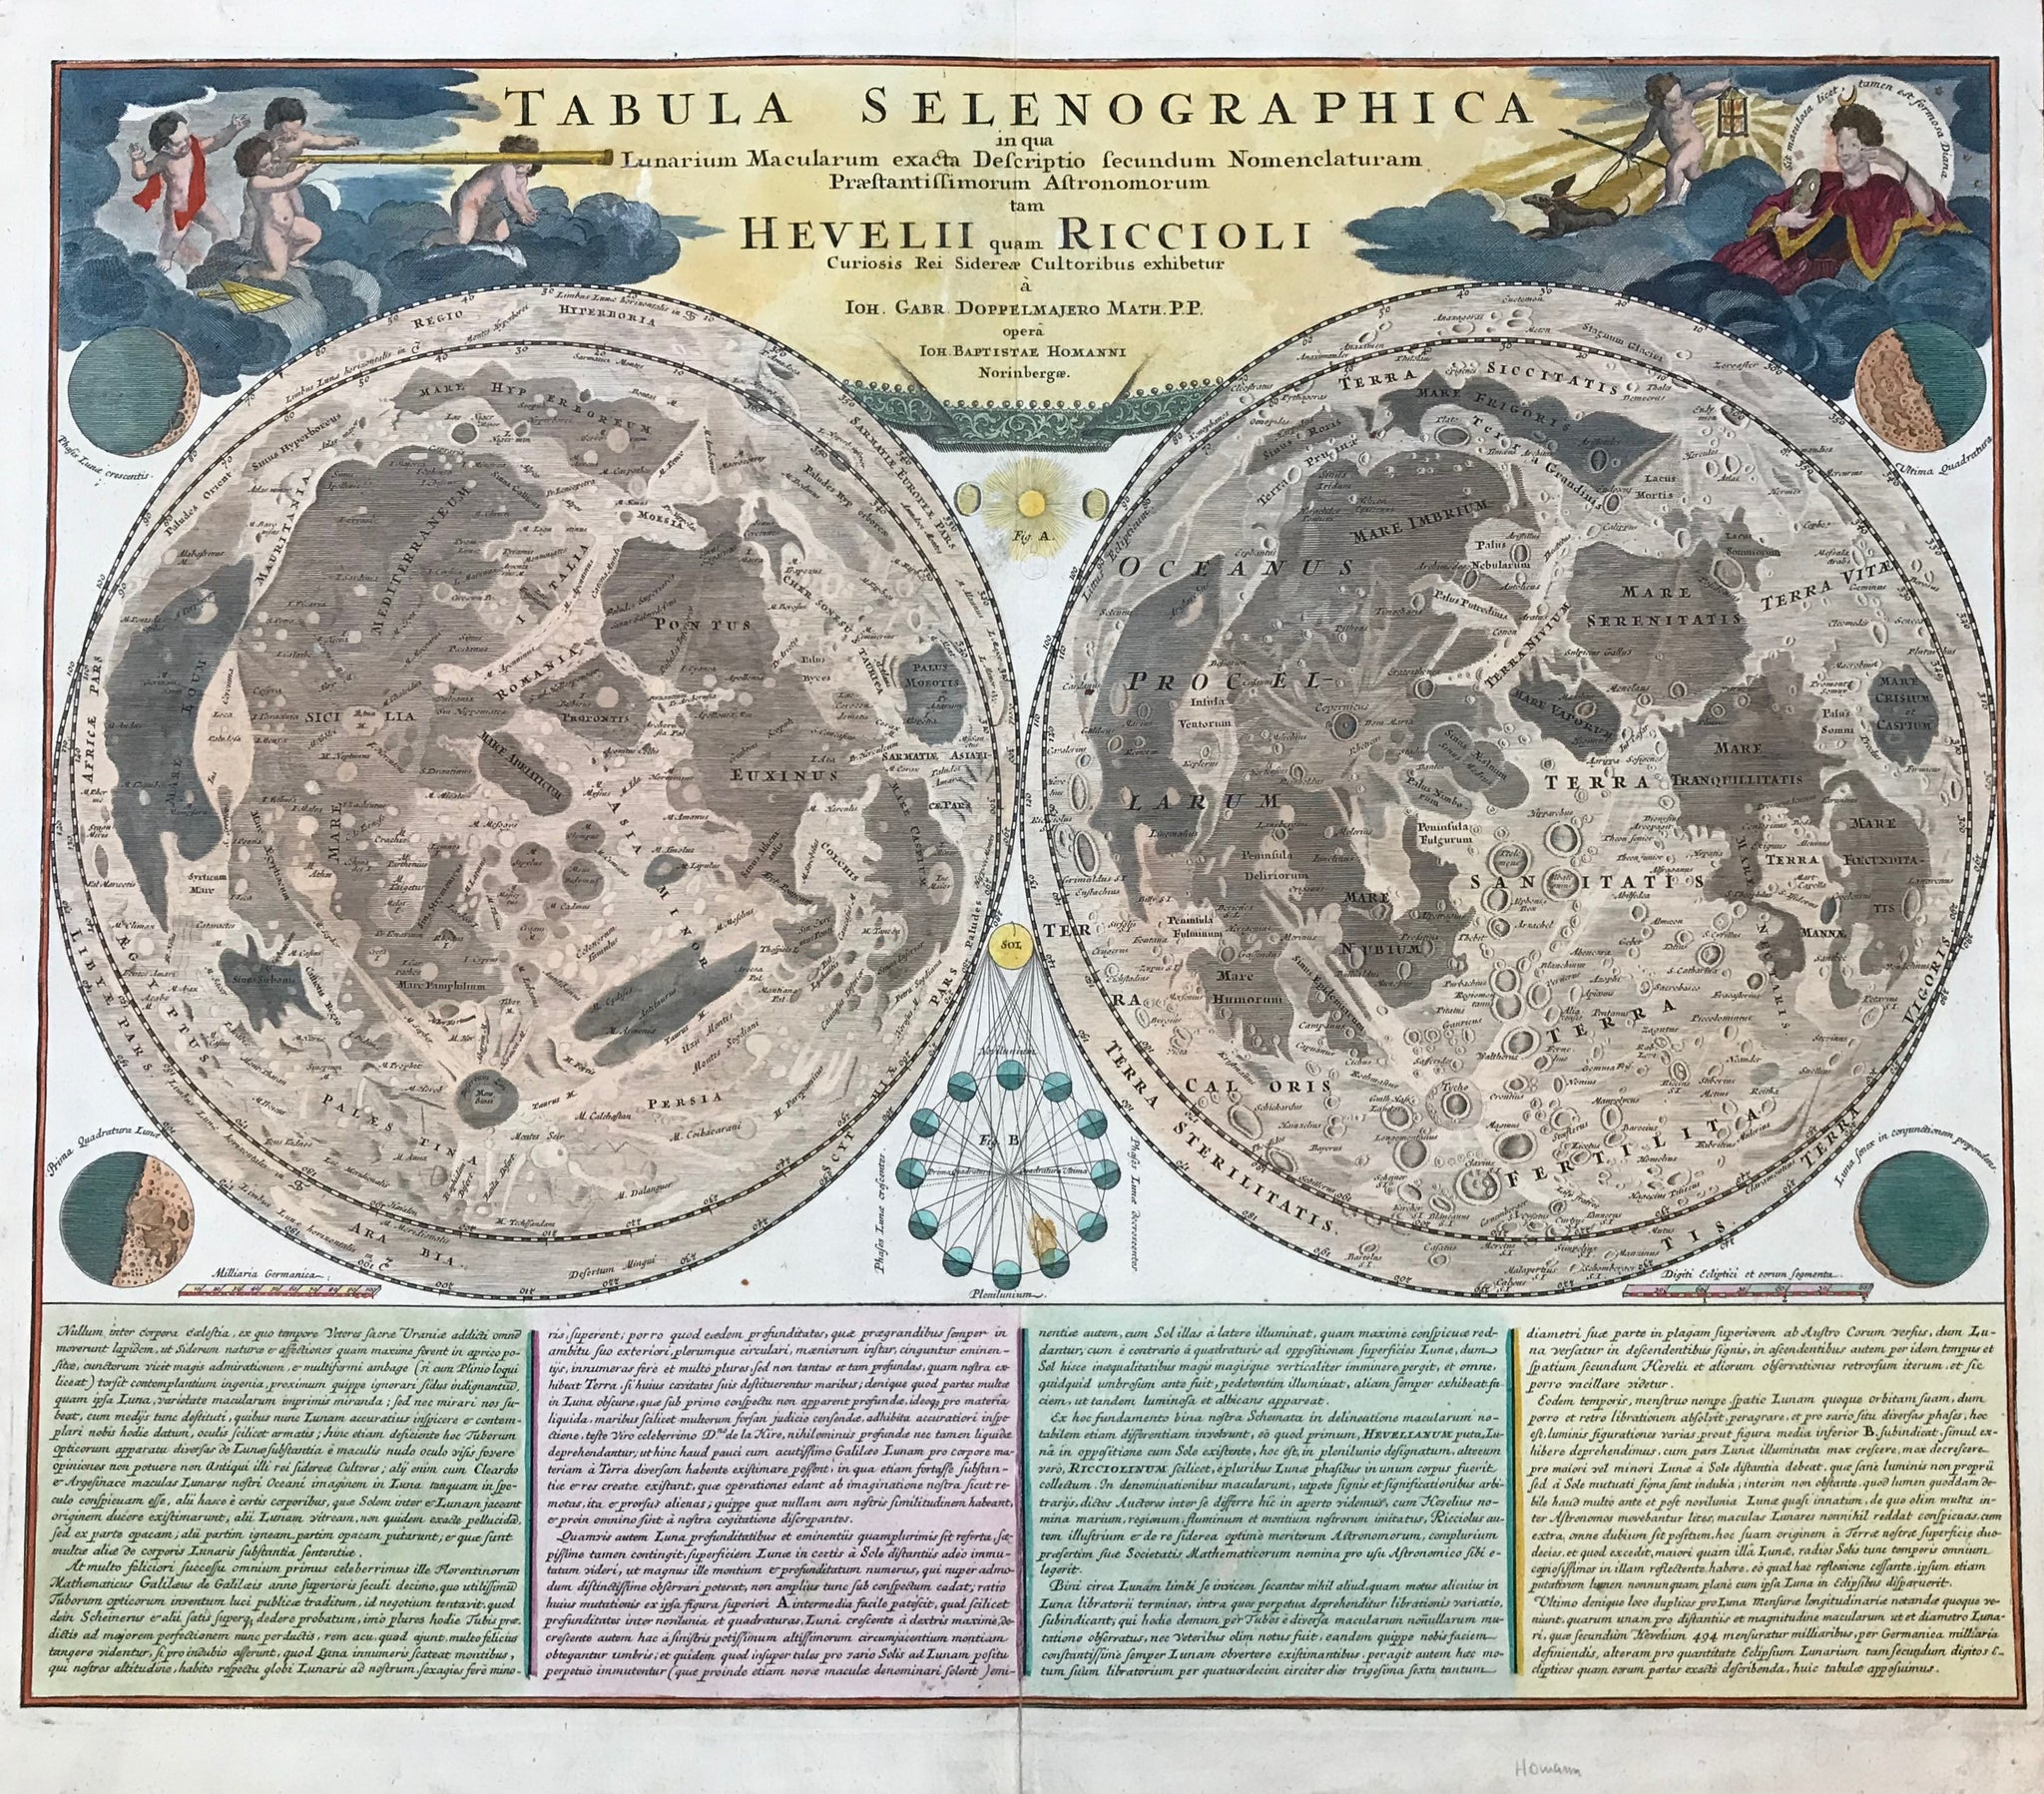 """Tabula Selenographica in qua Lunarium Macularum exacta Descriptio secundum Nomenclaturam Praestissimorum Astronomorum tam Hevelii quam Riccioli...  Copper engraving map by Johann Baptist Homann in Nuerenberg, ca 1707 after  Johann Gabriel Doppelmayer ( 1671-1750).  The two maps showng the surface of the moon are from models by Johannes Hevelius and Giovanni Battista Riccioli using their nomenclature."